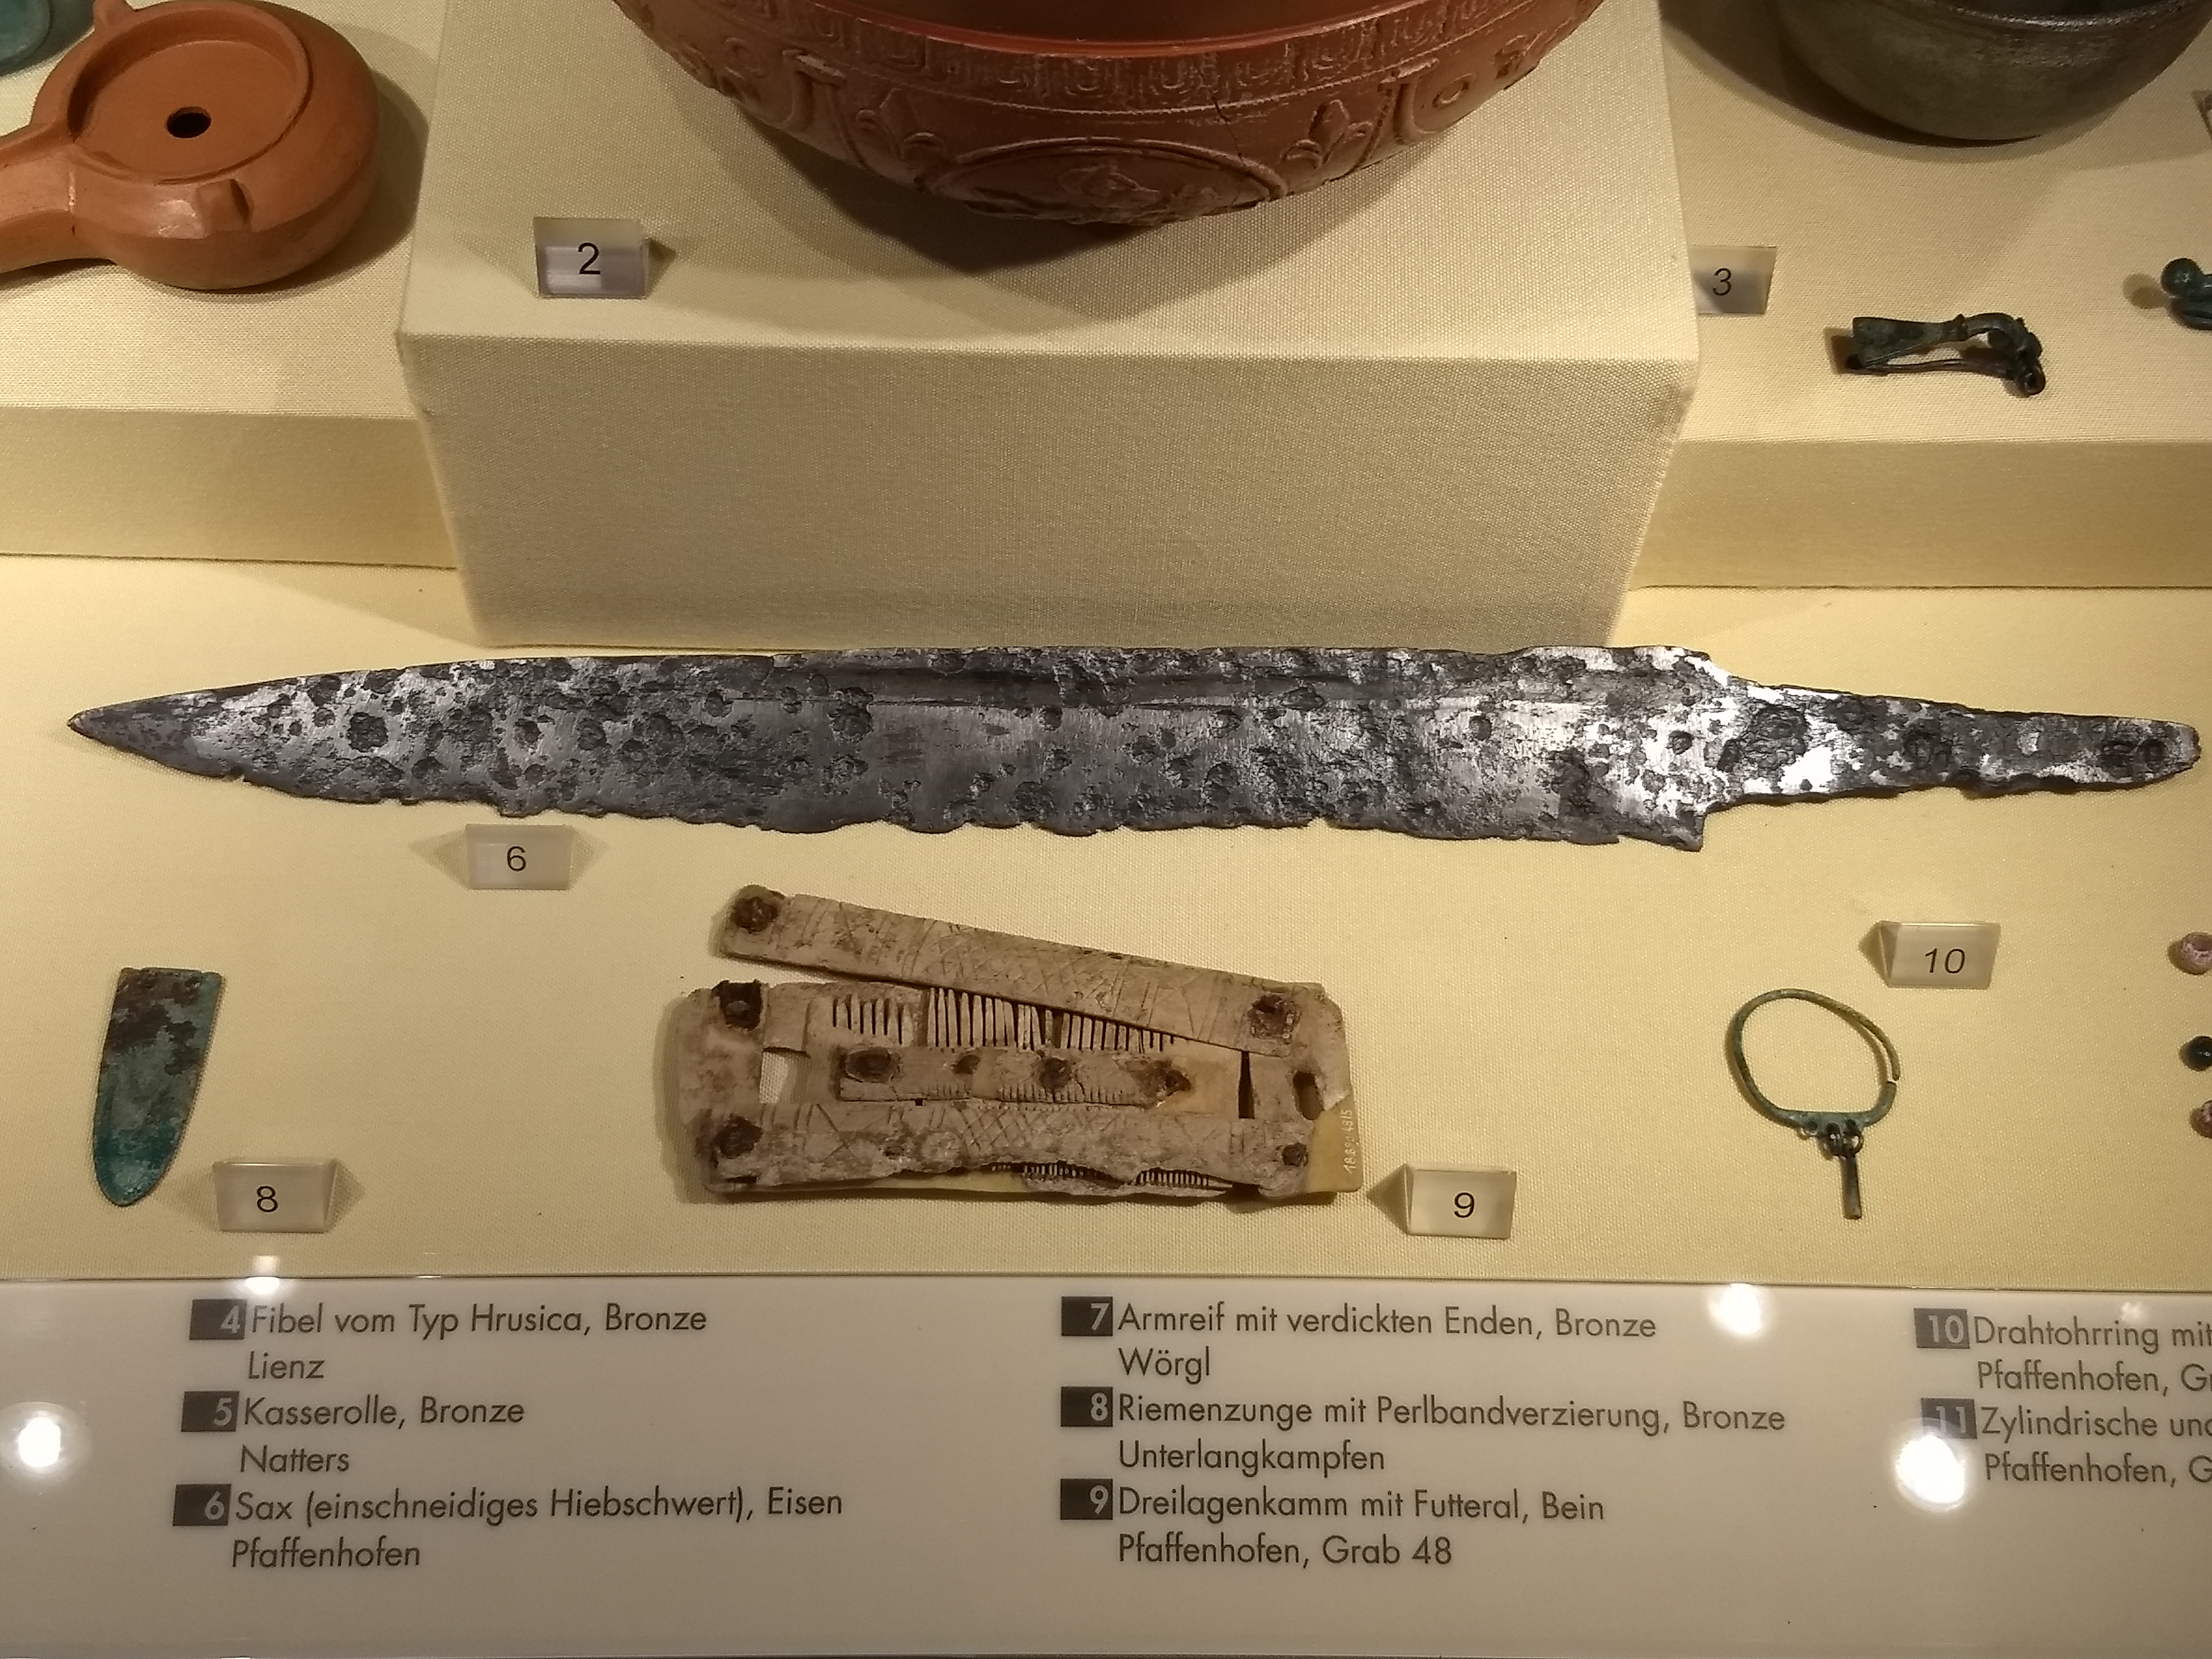 A pitted sexa blade, a comb with sheaths for the teeth, a large clay pot, and some small metal dress accessories in a glass case